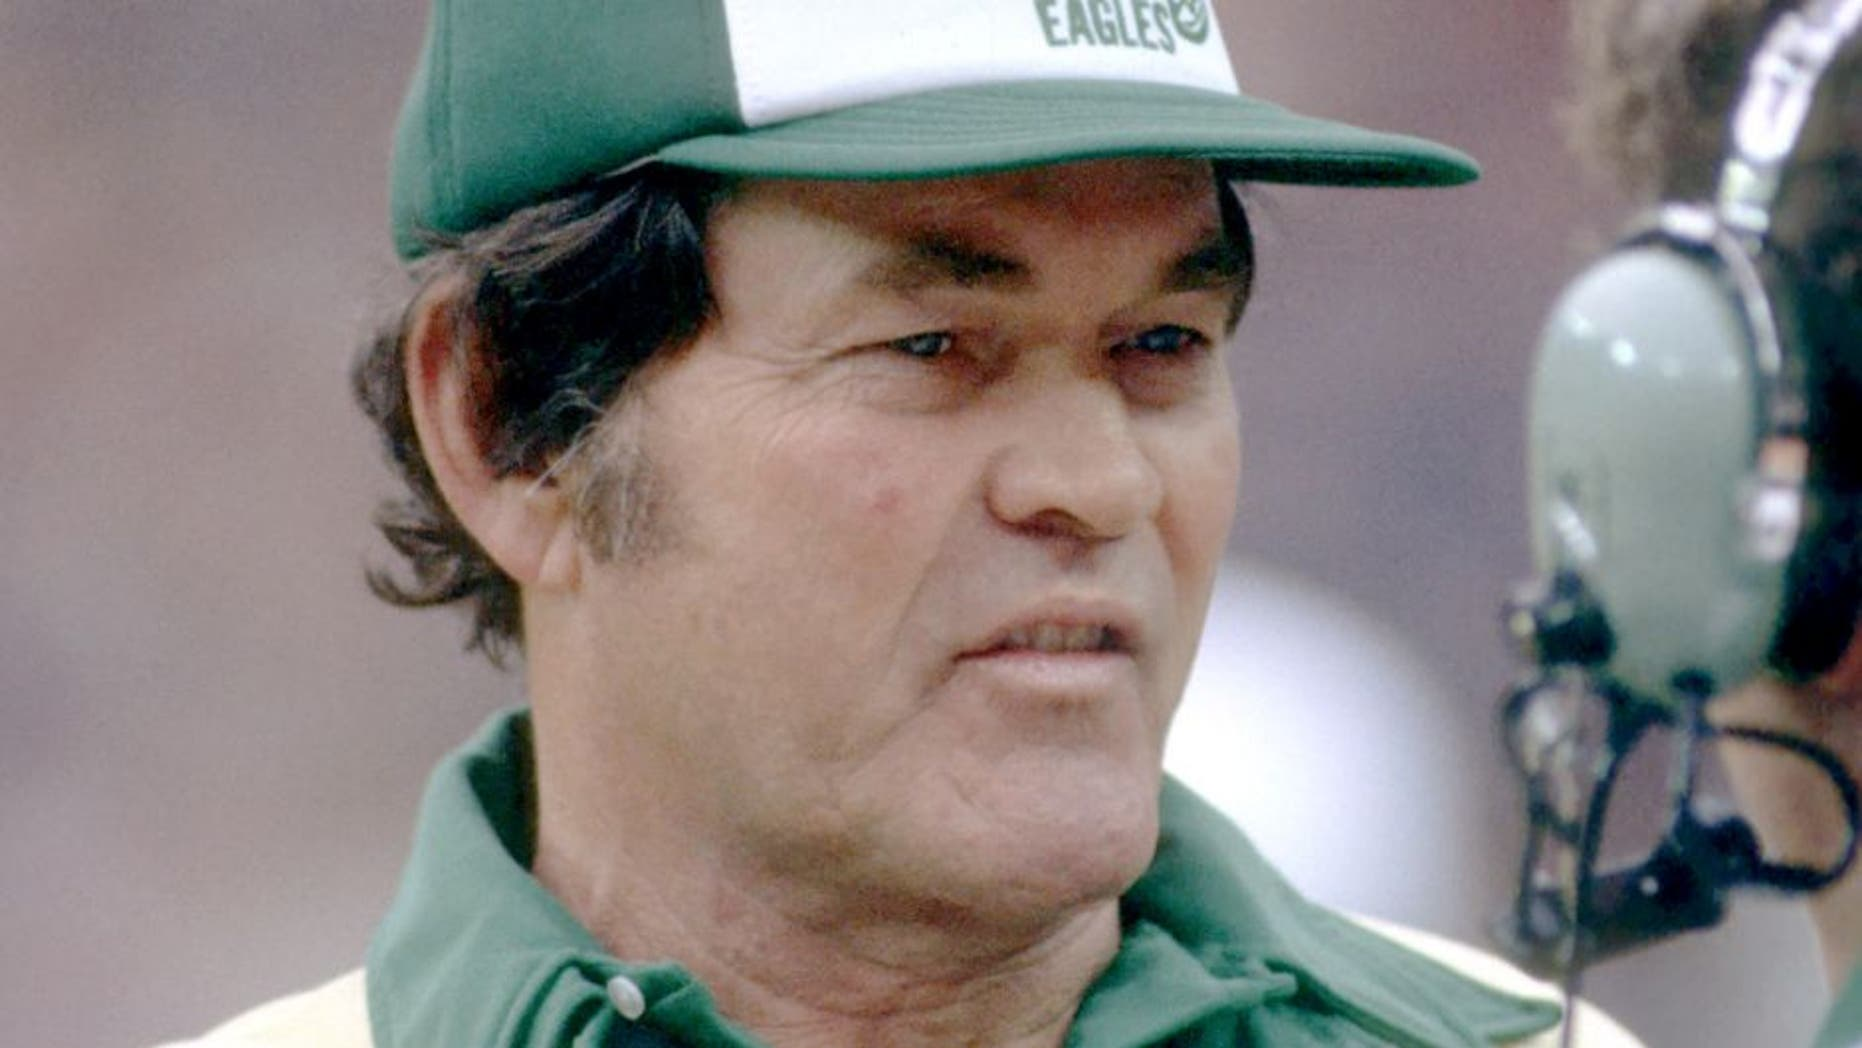 PHILADELPHIA - CIRCA 1984: Head coach Marion Campbell of the Philadelphia Eagles on the sideline during a game at Veterans Stadium circa 1984 in Philadelphia, Pennsylvania. (Photo by George Gojkovich/Getty Images) *** Local Caption *** Marion Campbell